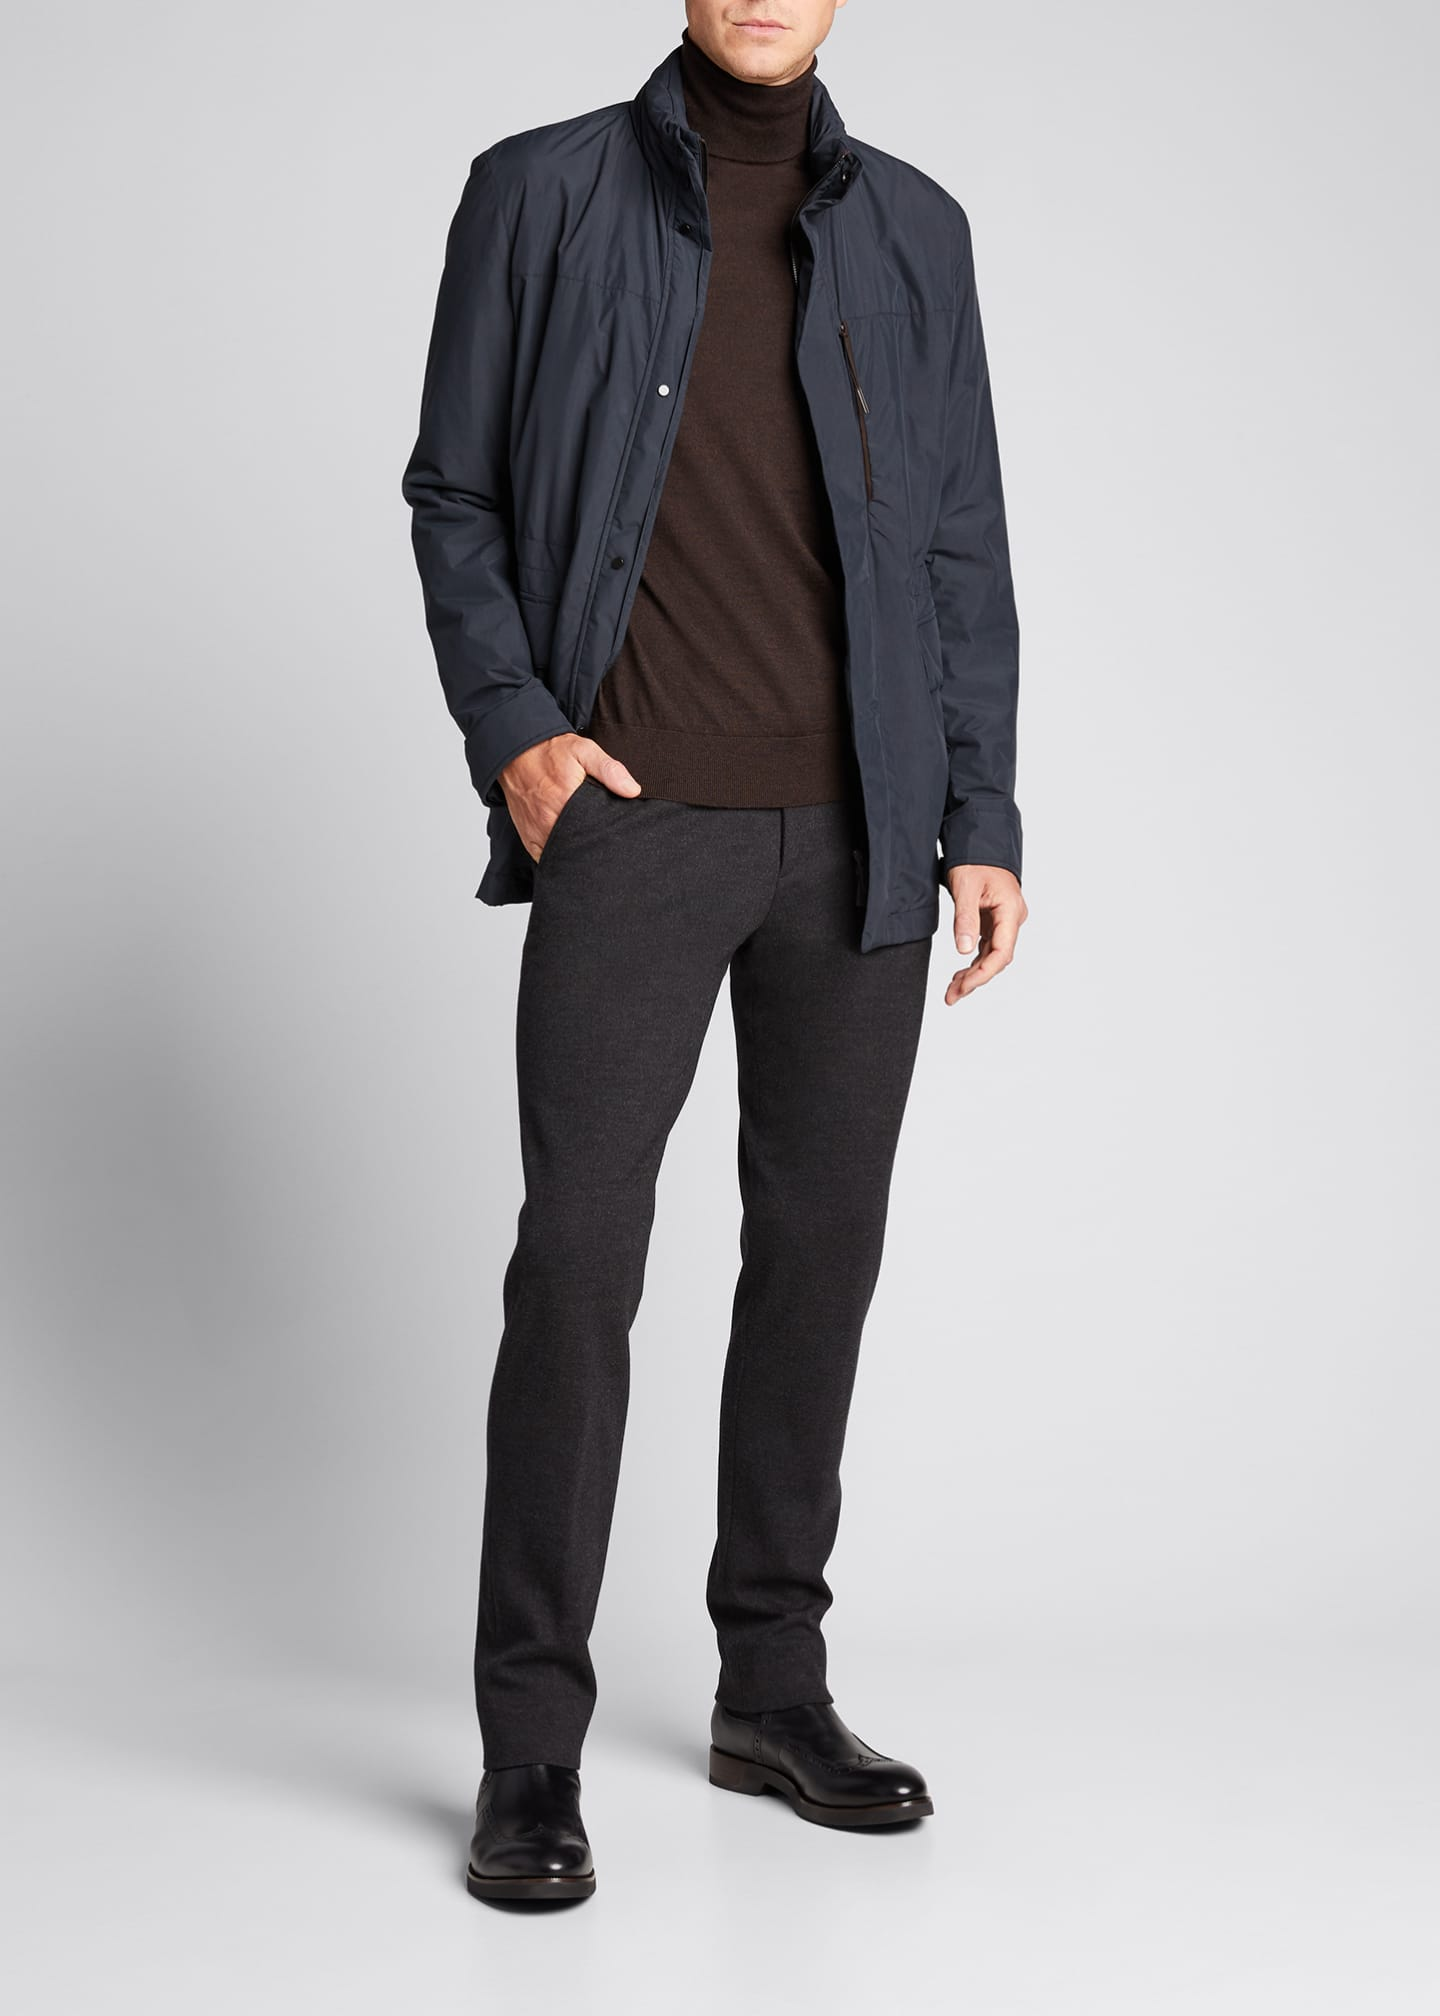 Image 1 of 5: Men's Stratos Nylon Field Jacket